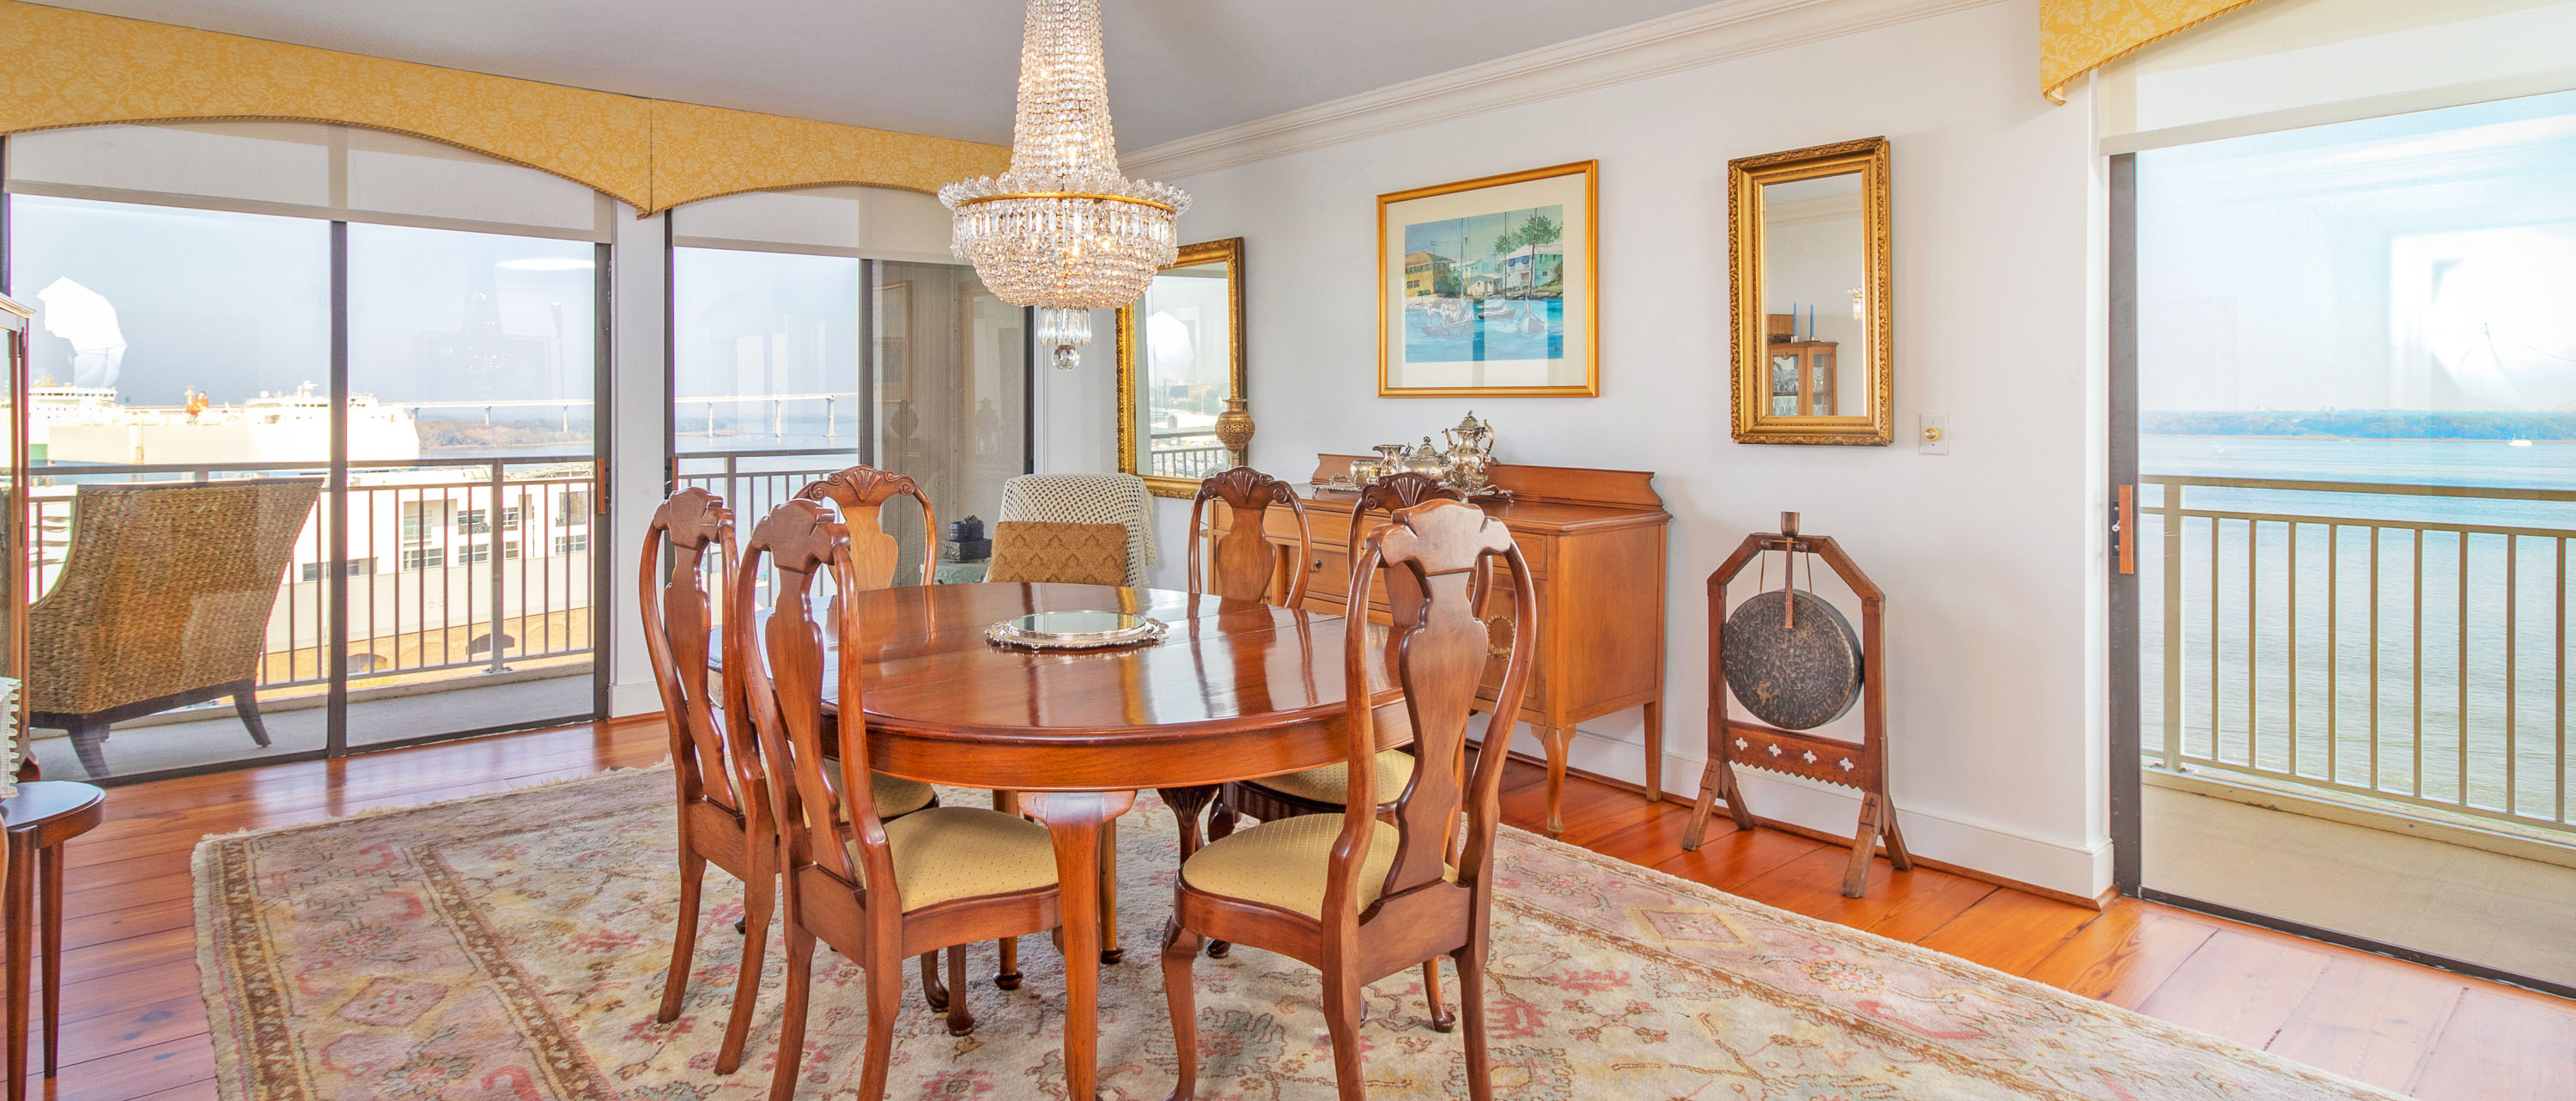 330 Concord Street FG, Dockside dining room